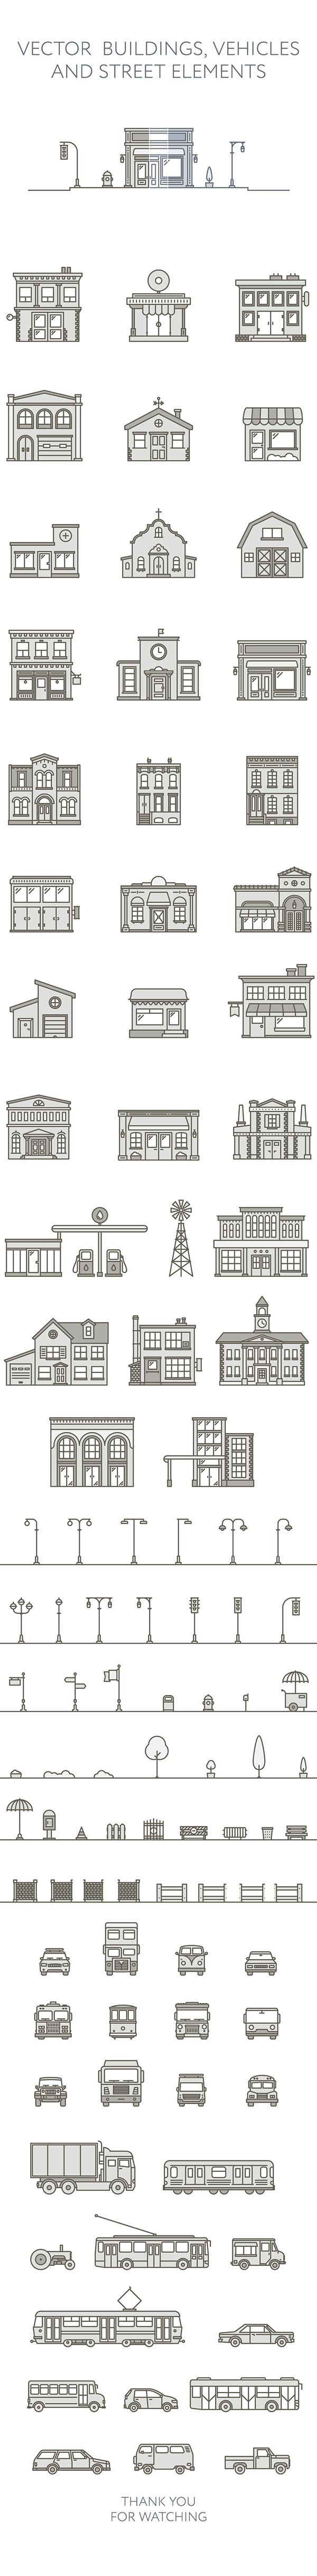 Vector buildings and street elements on Behance